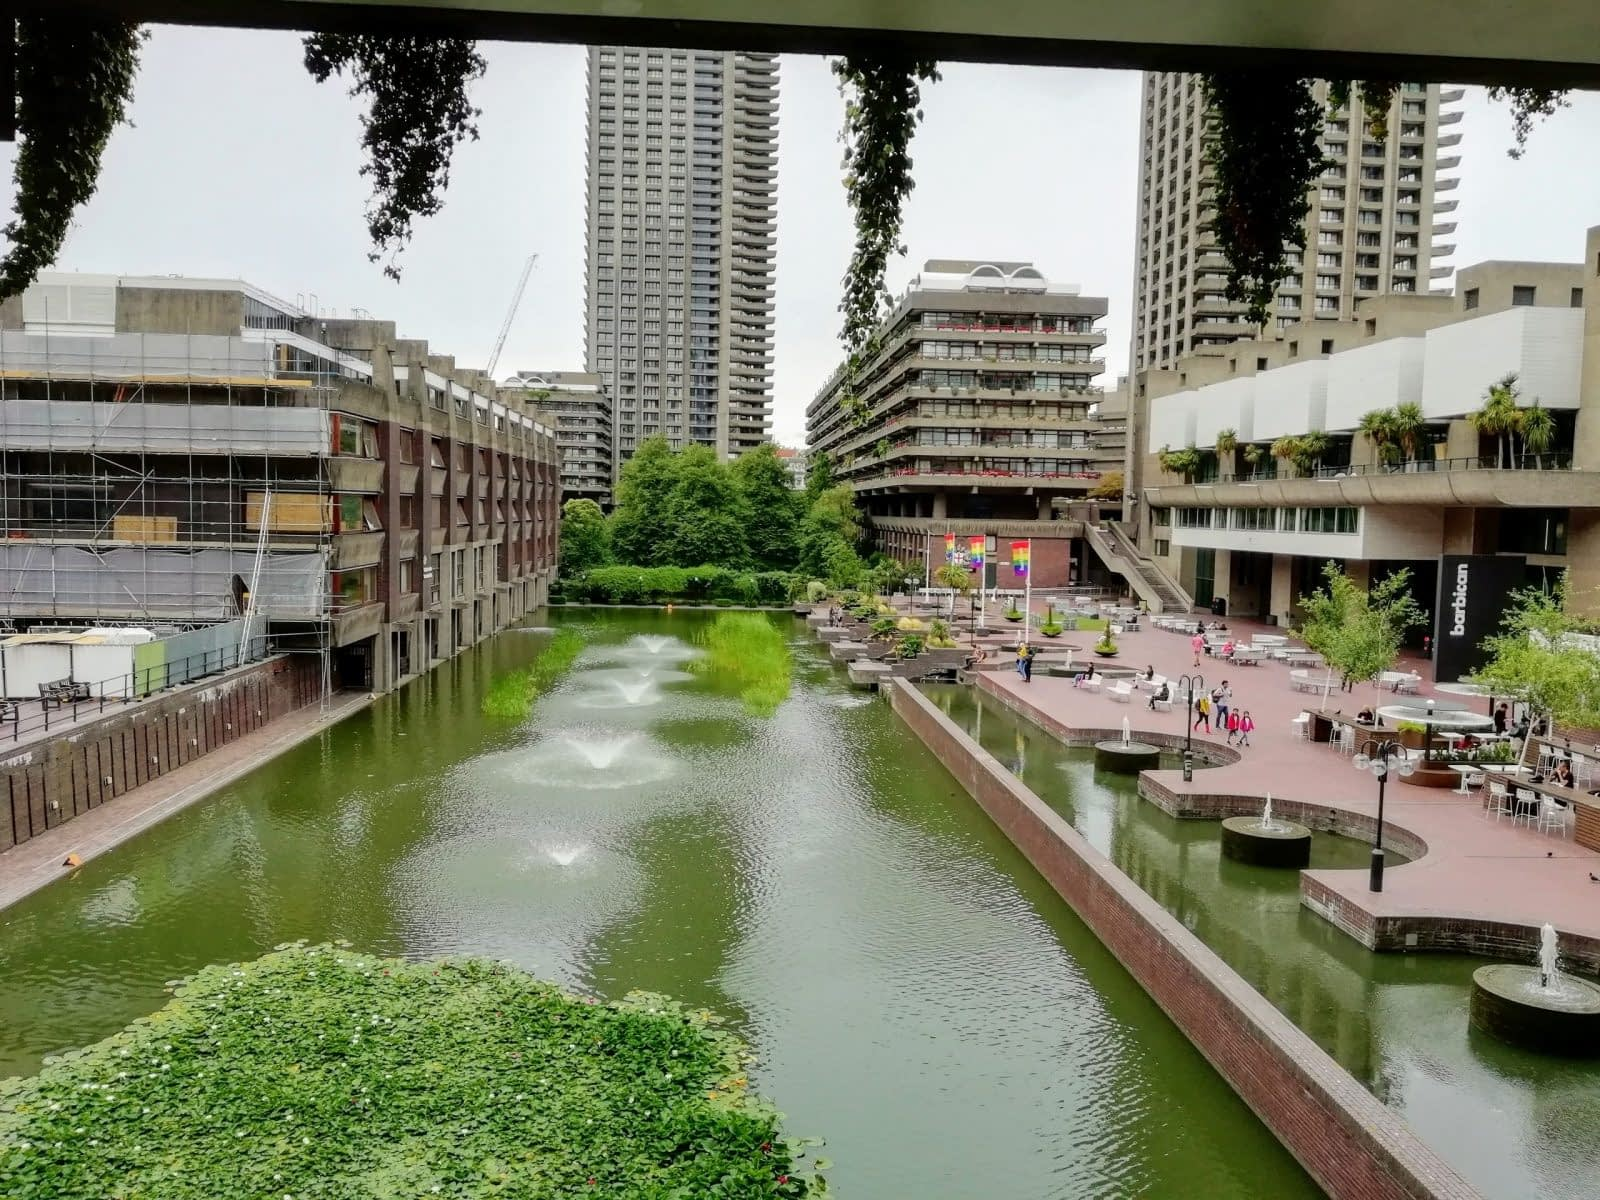 Visiting Barbican Conservatory: Photo Gallery 12